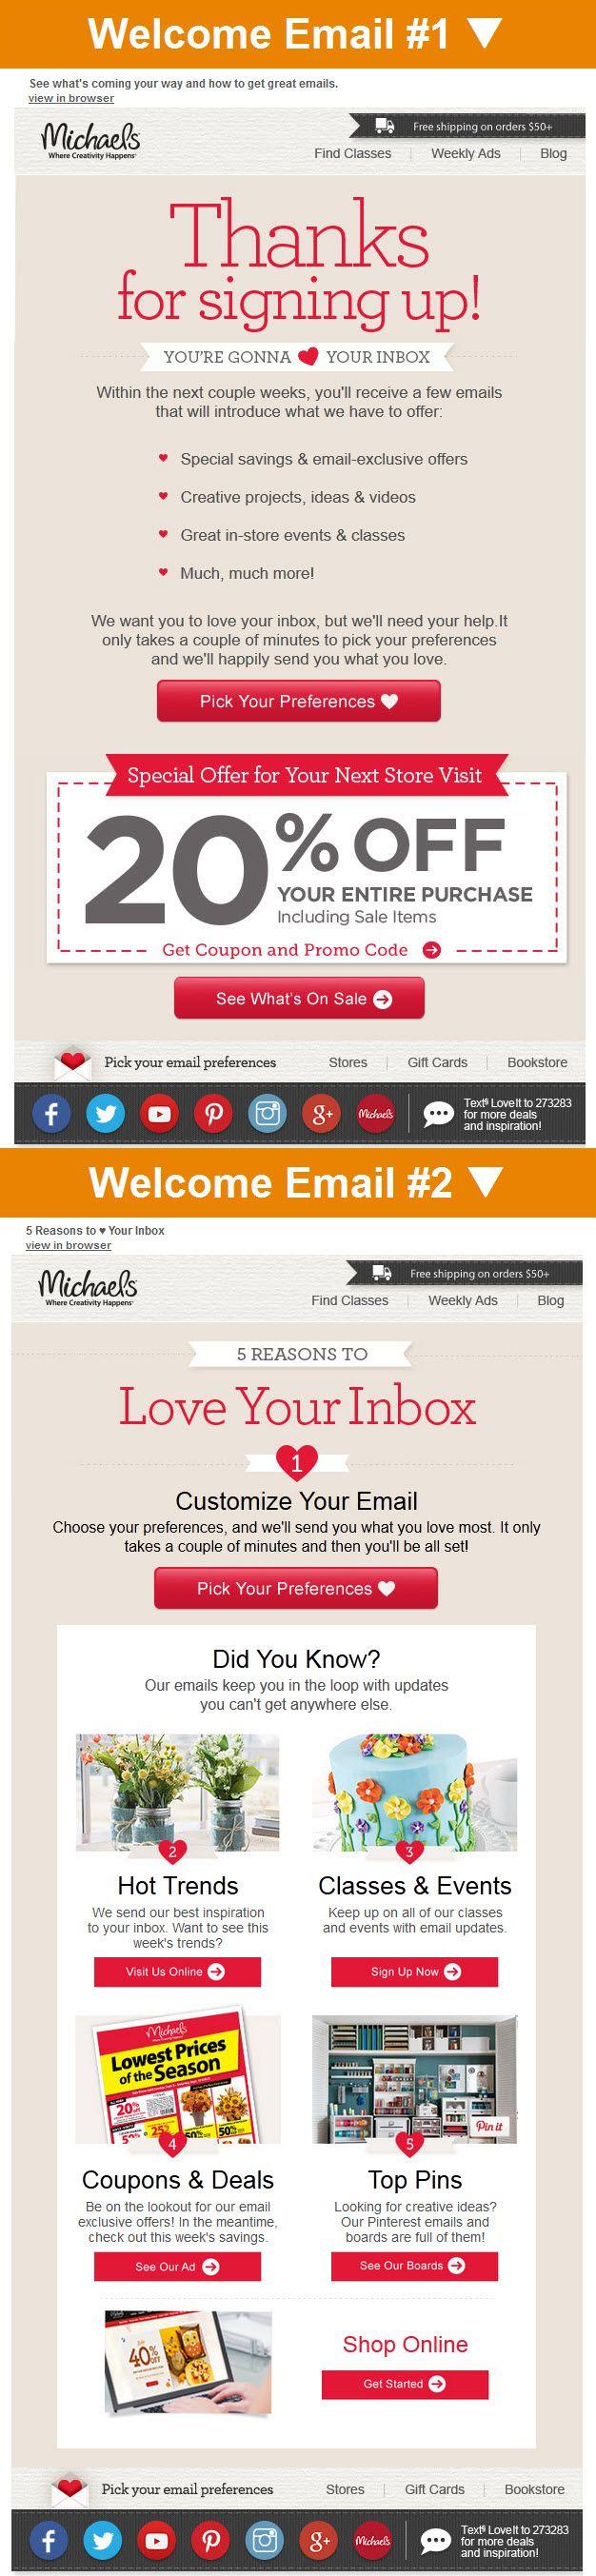 Michaels >> sent 5/2014 >> Get Ready for Savings & Inspiration! >> Your Emails Have Perks - See Inside! >> This responsive 2-email welcome series puts heavy emphasis on setting expectations and collecting preferences. Michaels very clearly wants to create a positive, transparent relationship from the beginning. The second email in the series also does a great job of engaging with great cross-channel calls-to-action. —Midori Kudo, Associate Designer, Salesforce Marketing Cloud